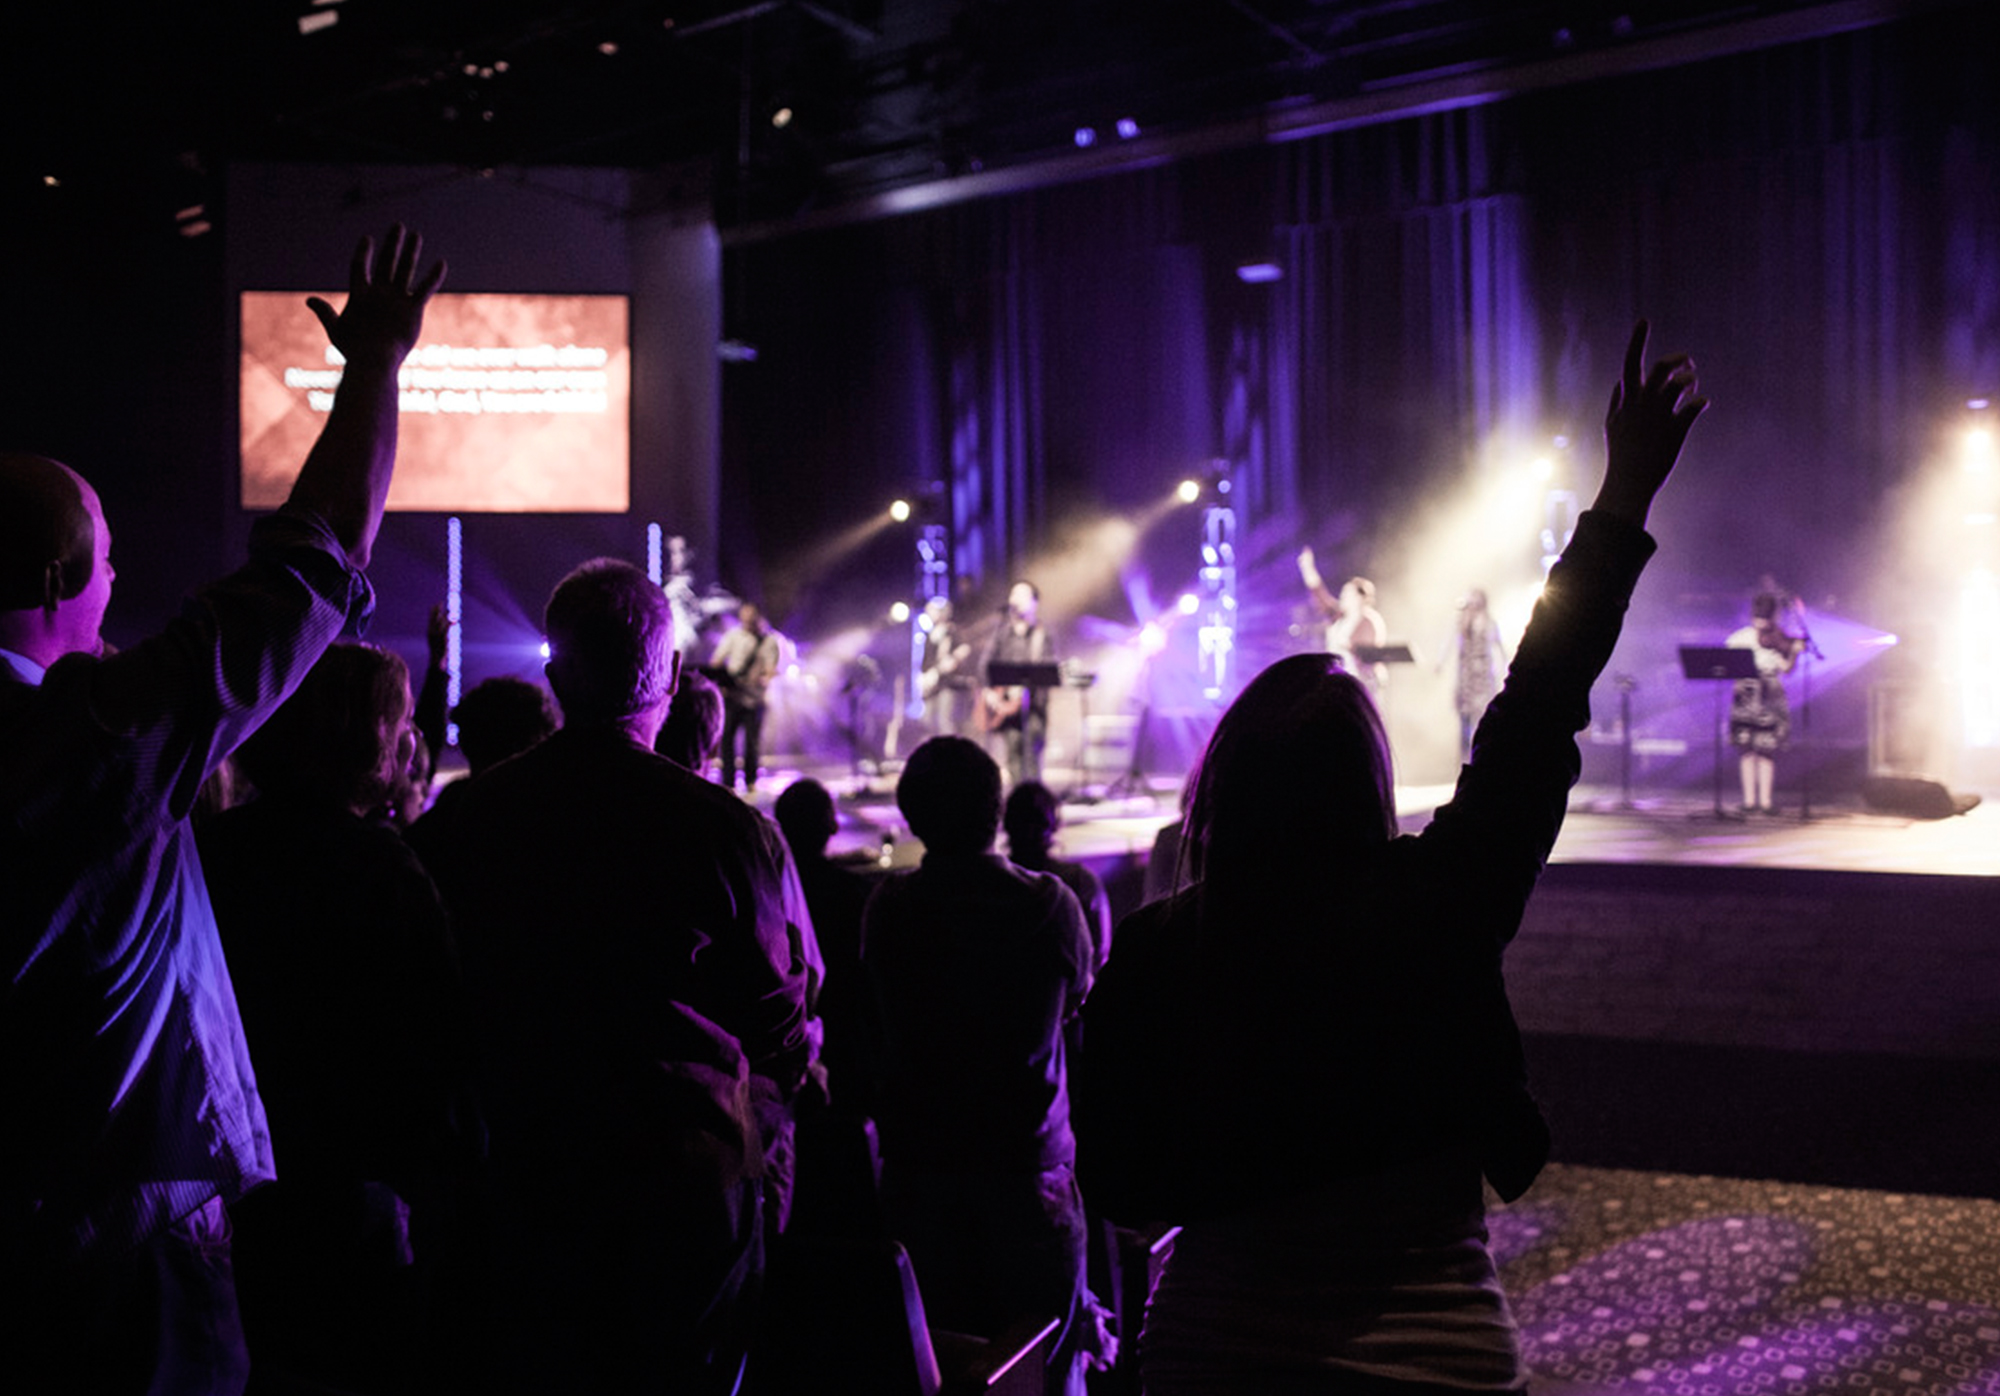 10 Media Tips To Make Church Easier For Newcomers